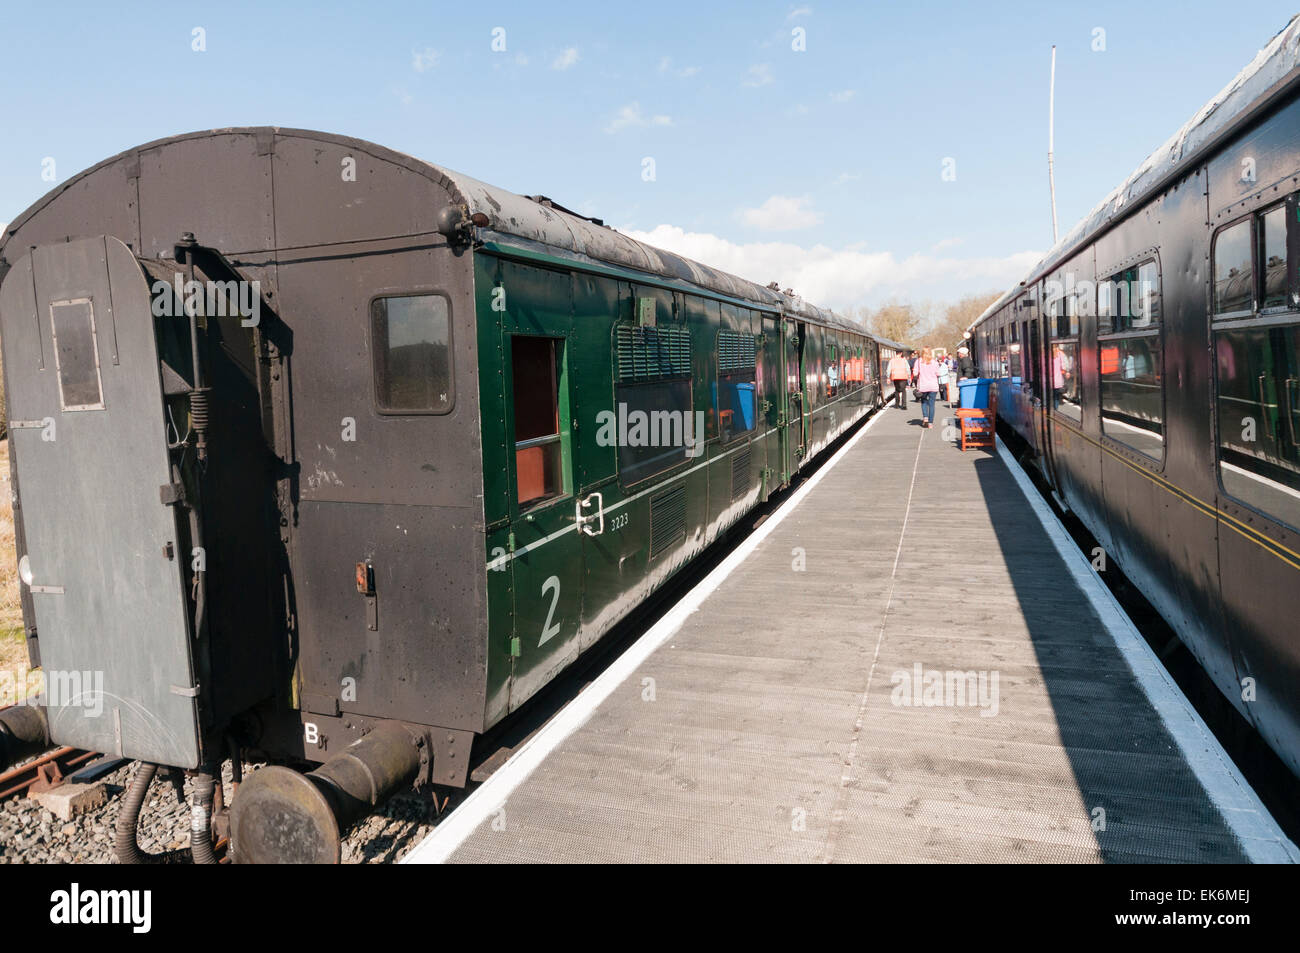 Railway carriages at Downpatrick Railway Preservation Society - Stock Image